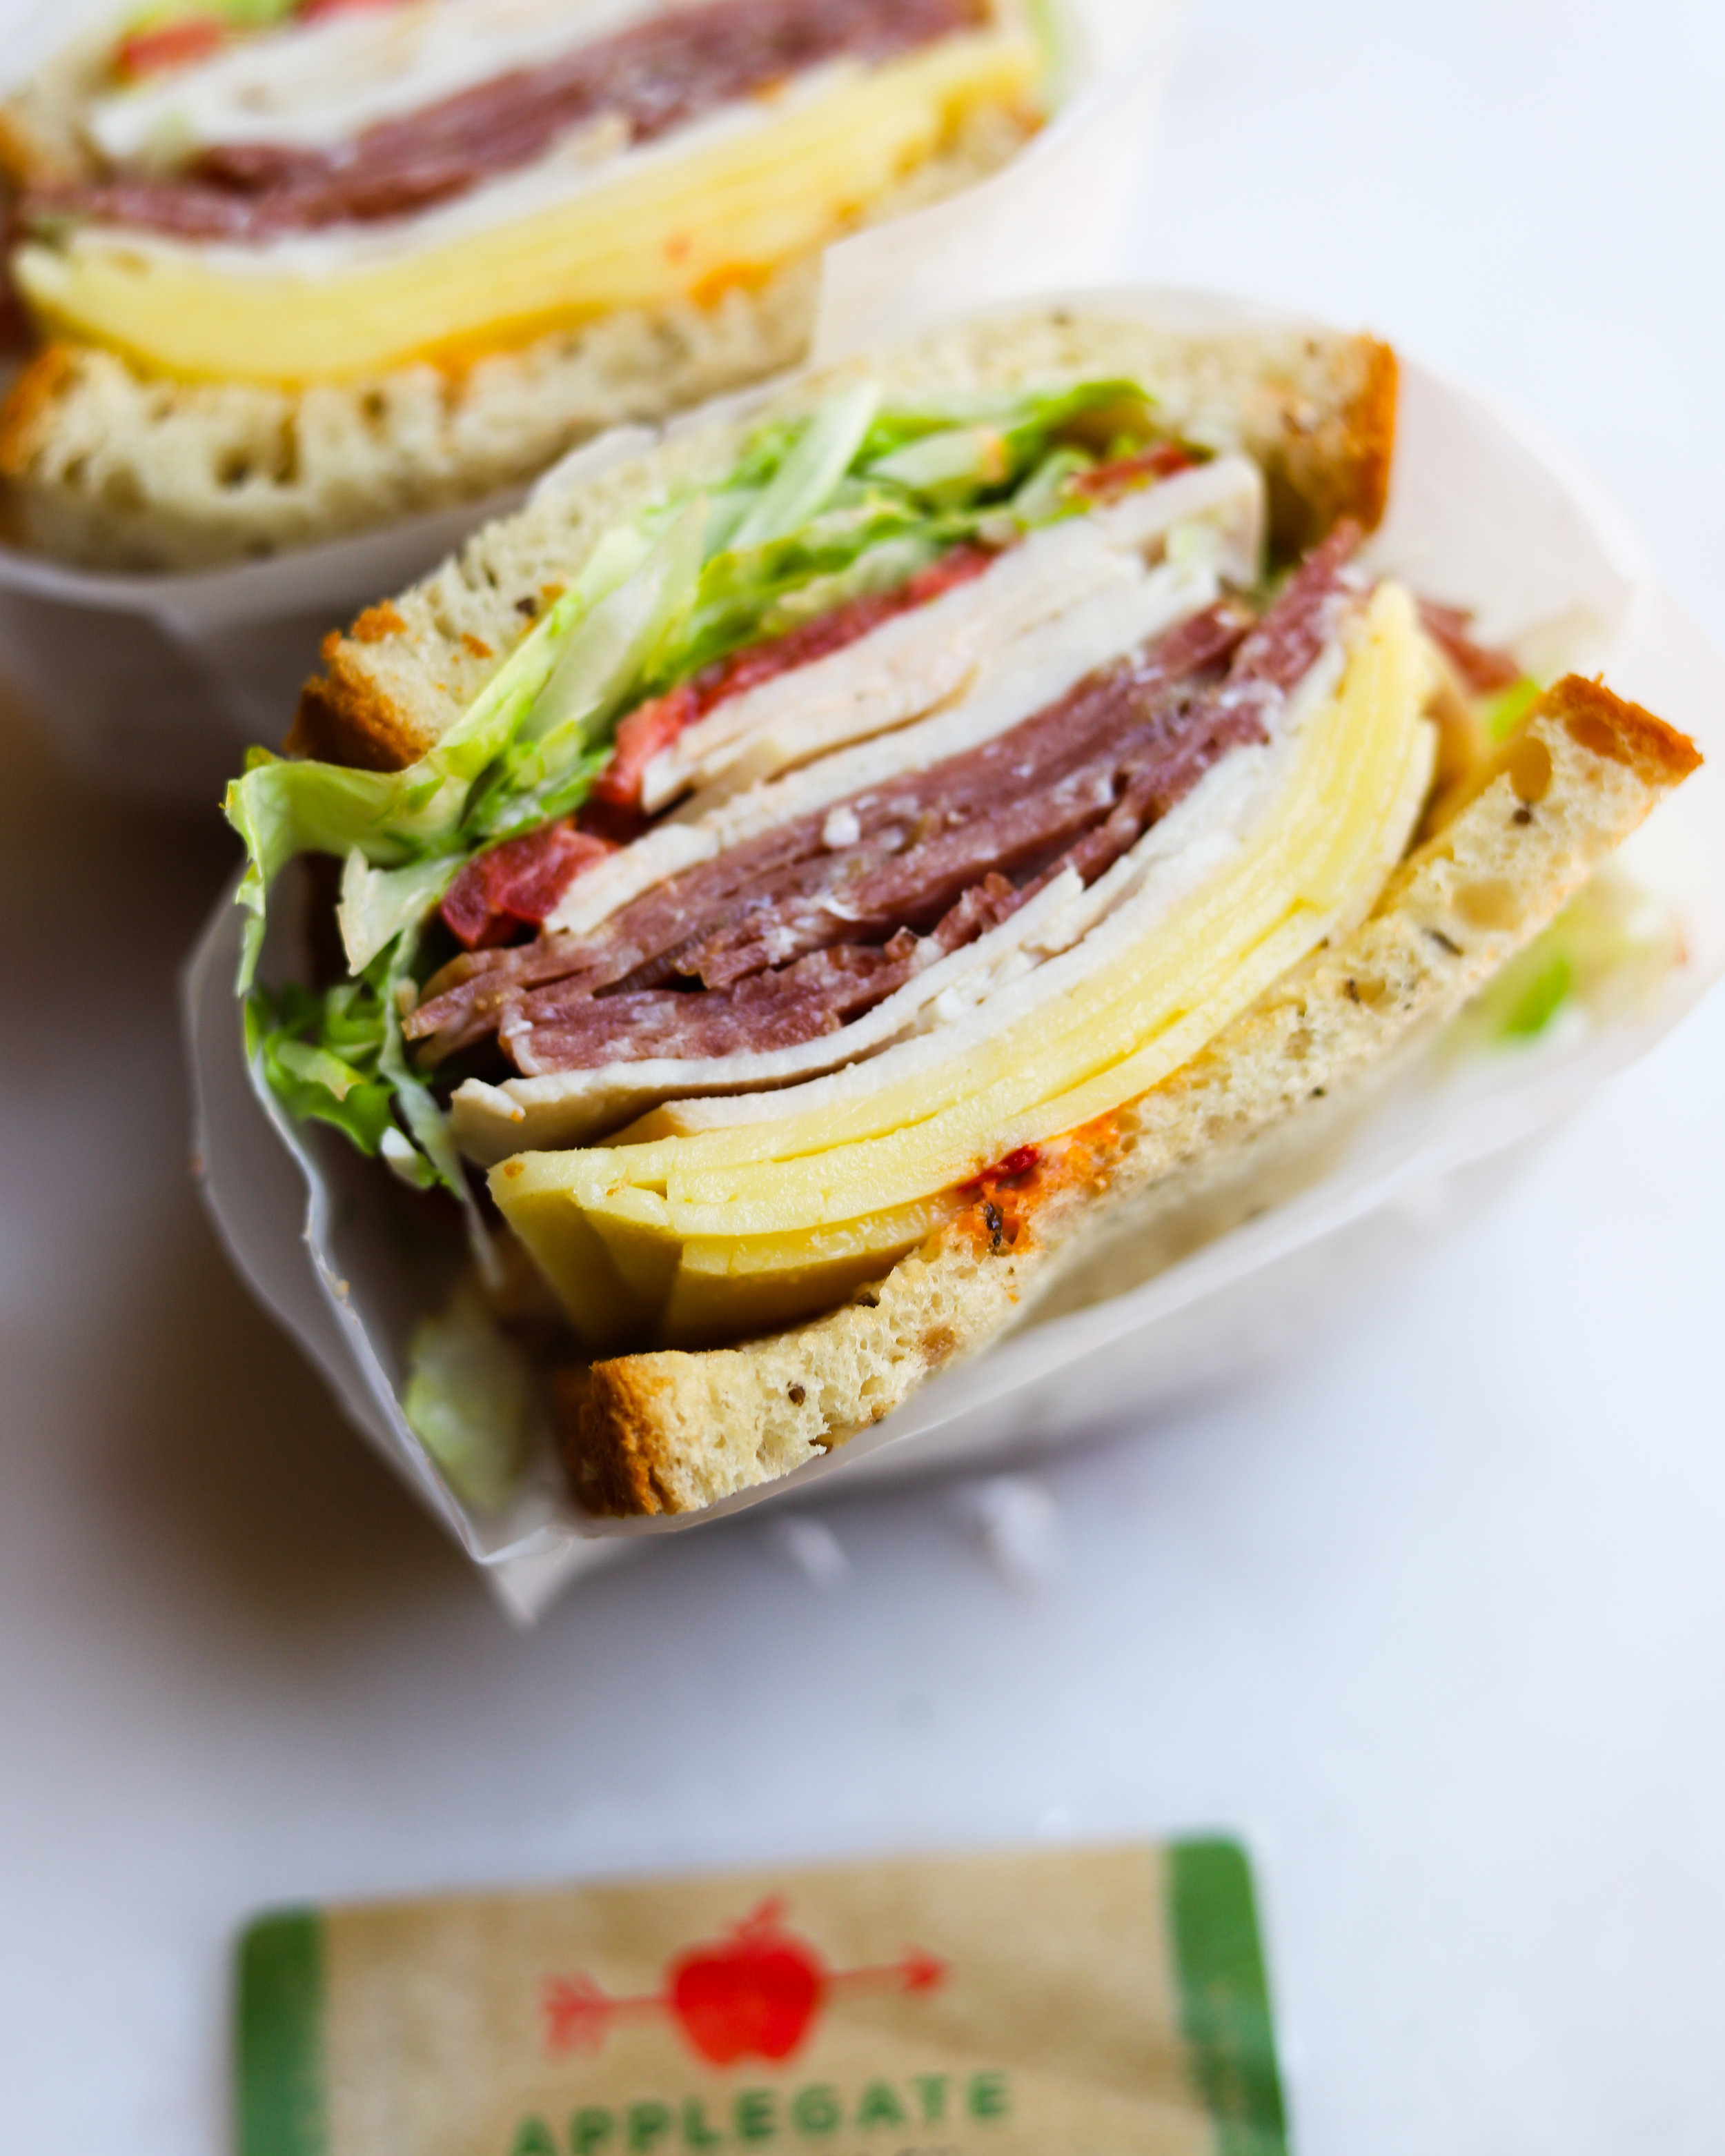 Stacked Spicy Italian Sandwich with Calabrian Chili Mayo